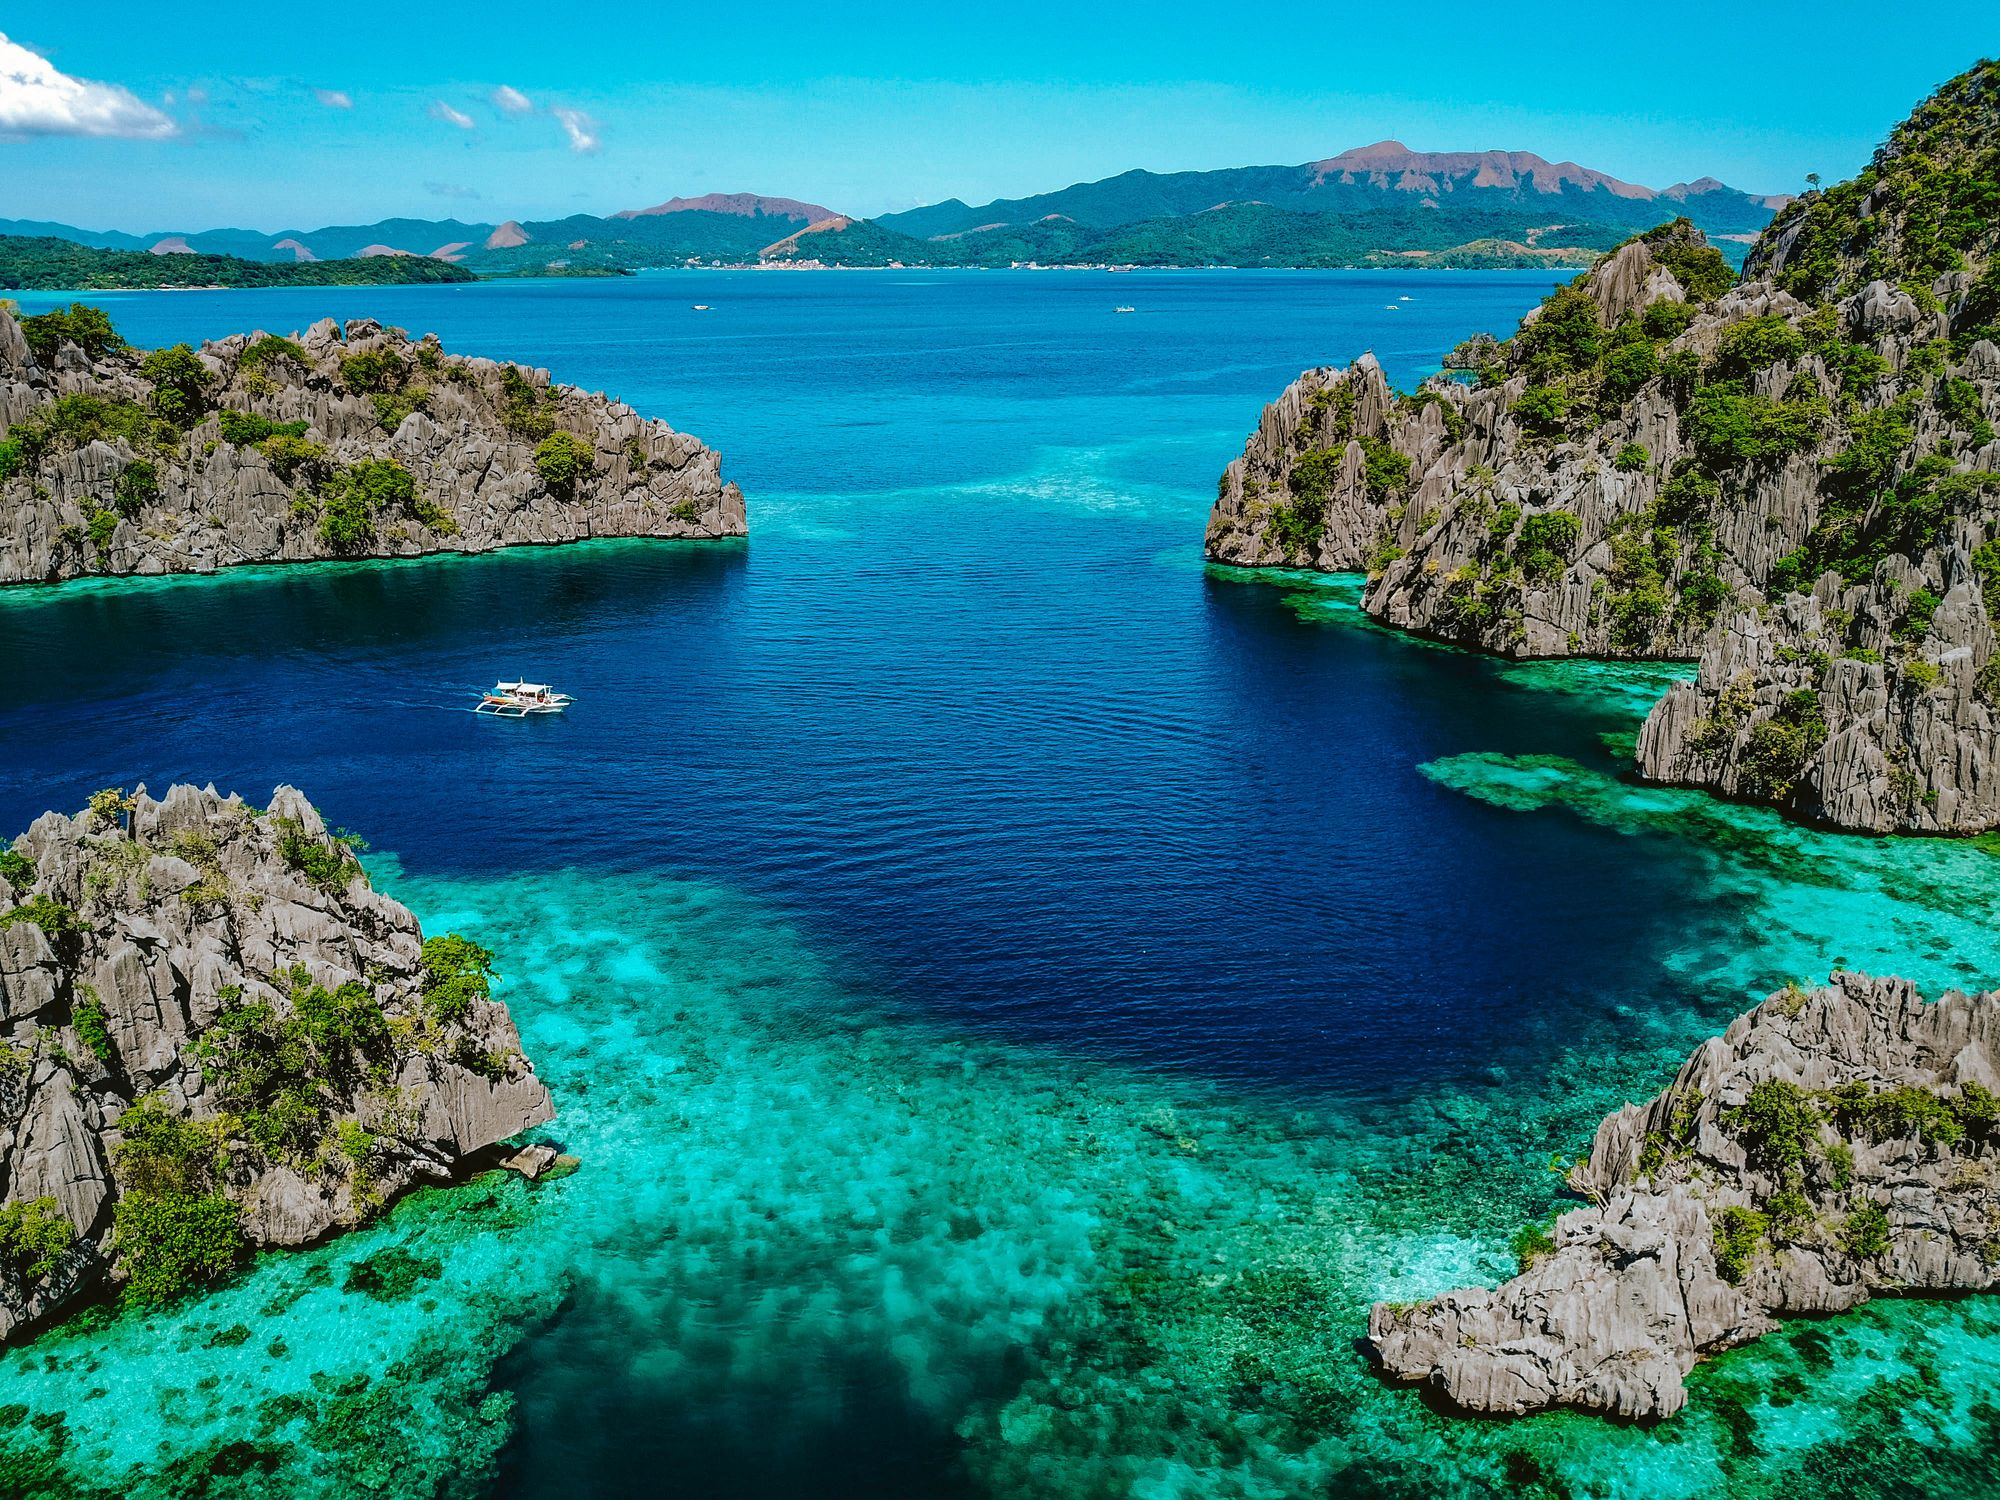 Small outrigger boat sails through a blue bay surrounded by limestone cliffs in Coron, Palawan, Philippines